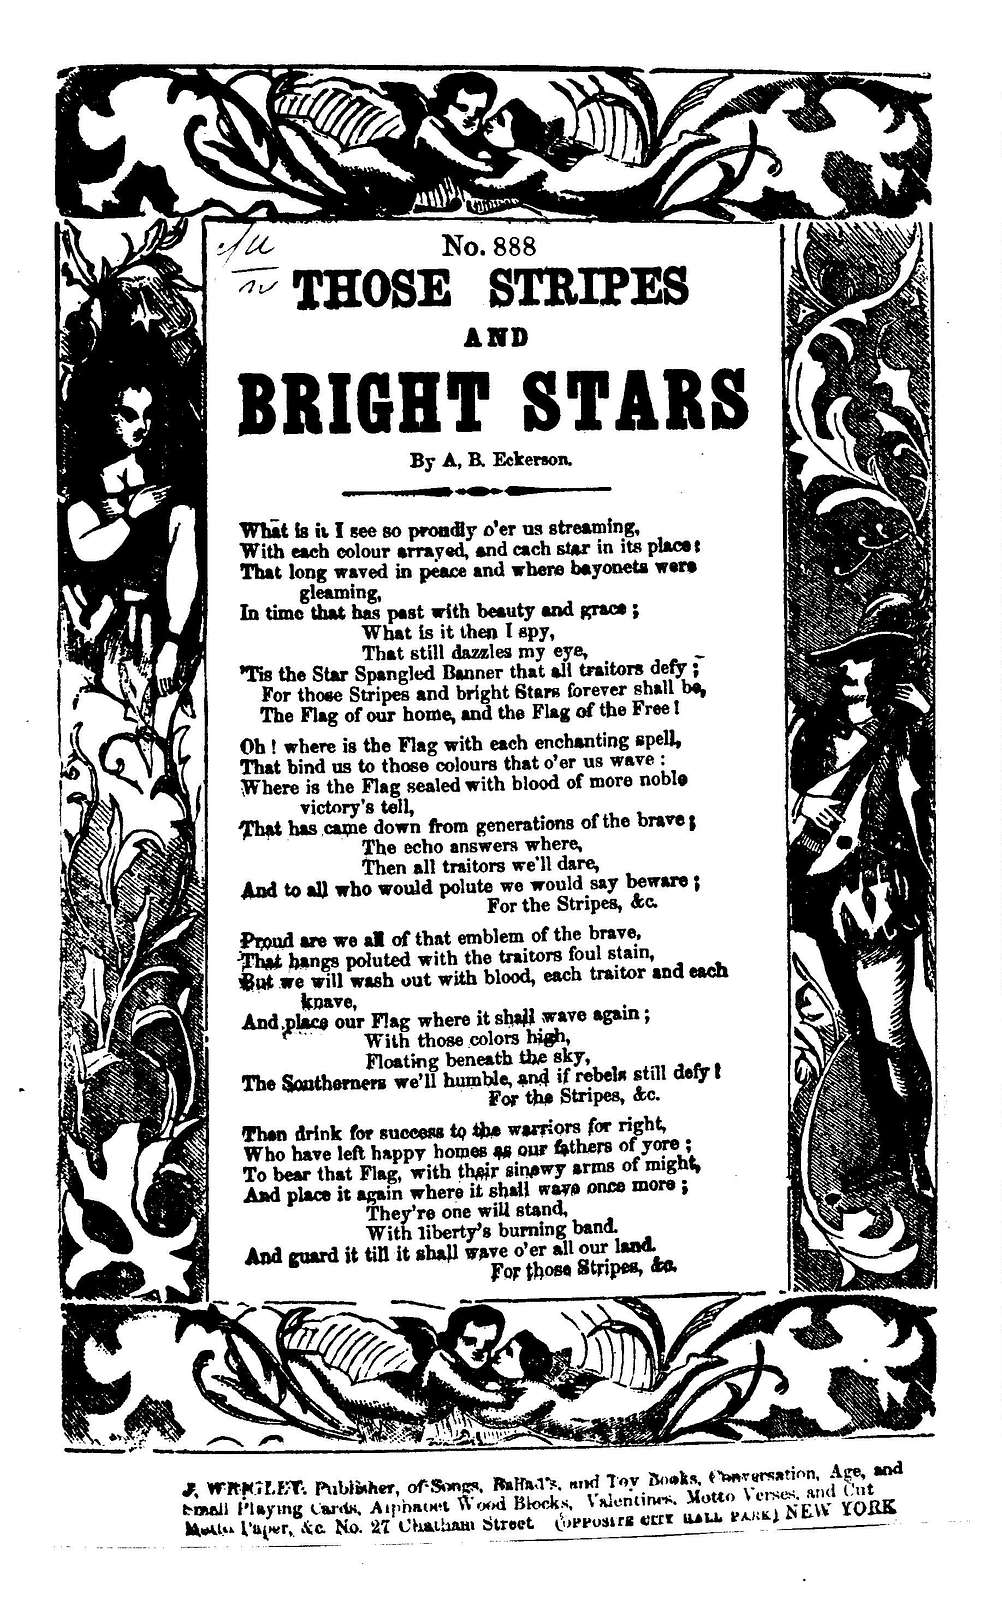 Those stripes and bright stars. By A. B. Eckerson ... J. Wrigley, Publisher, ... New York